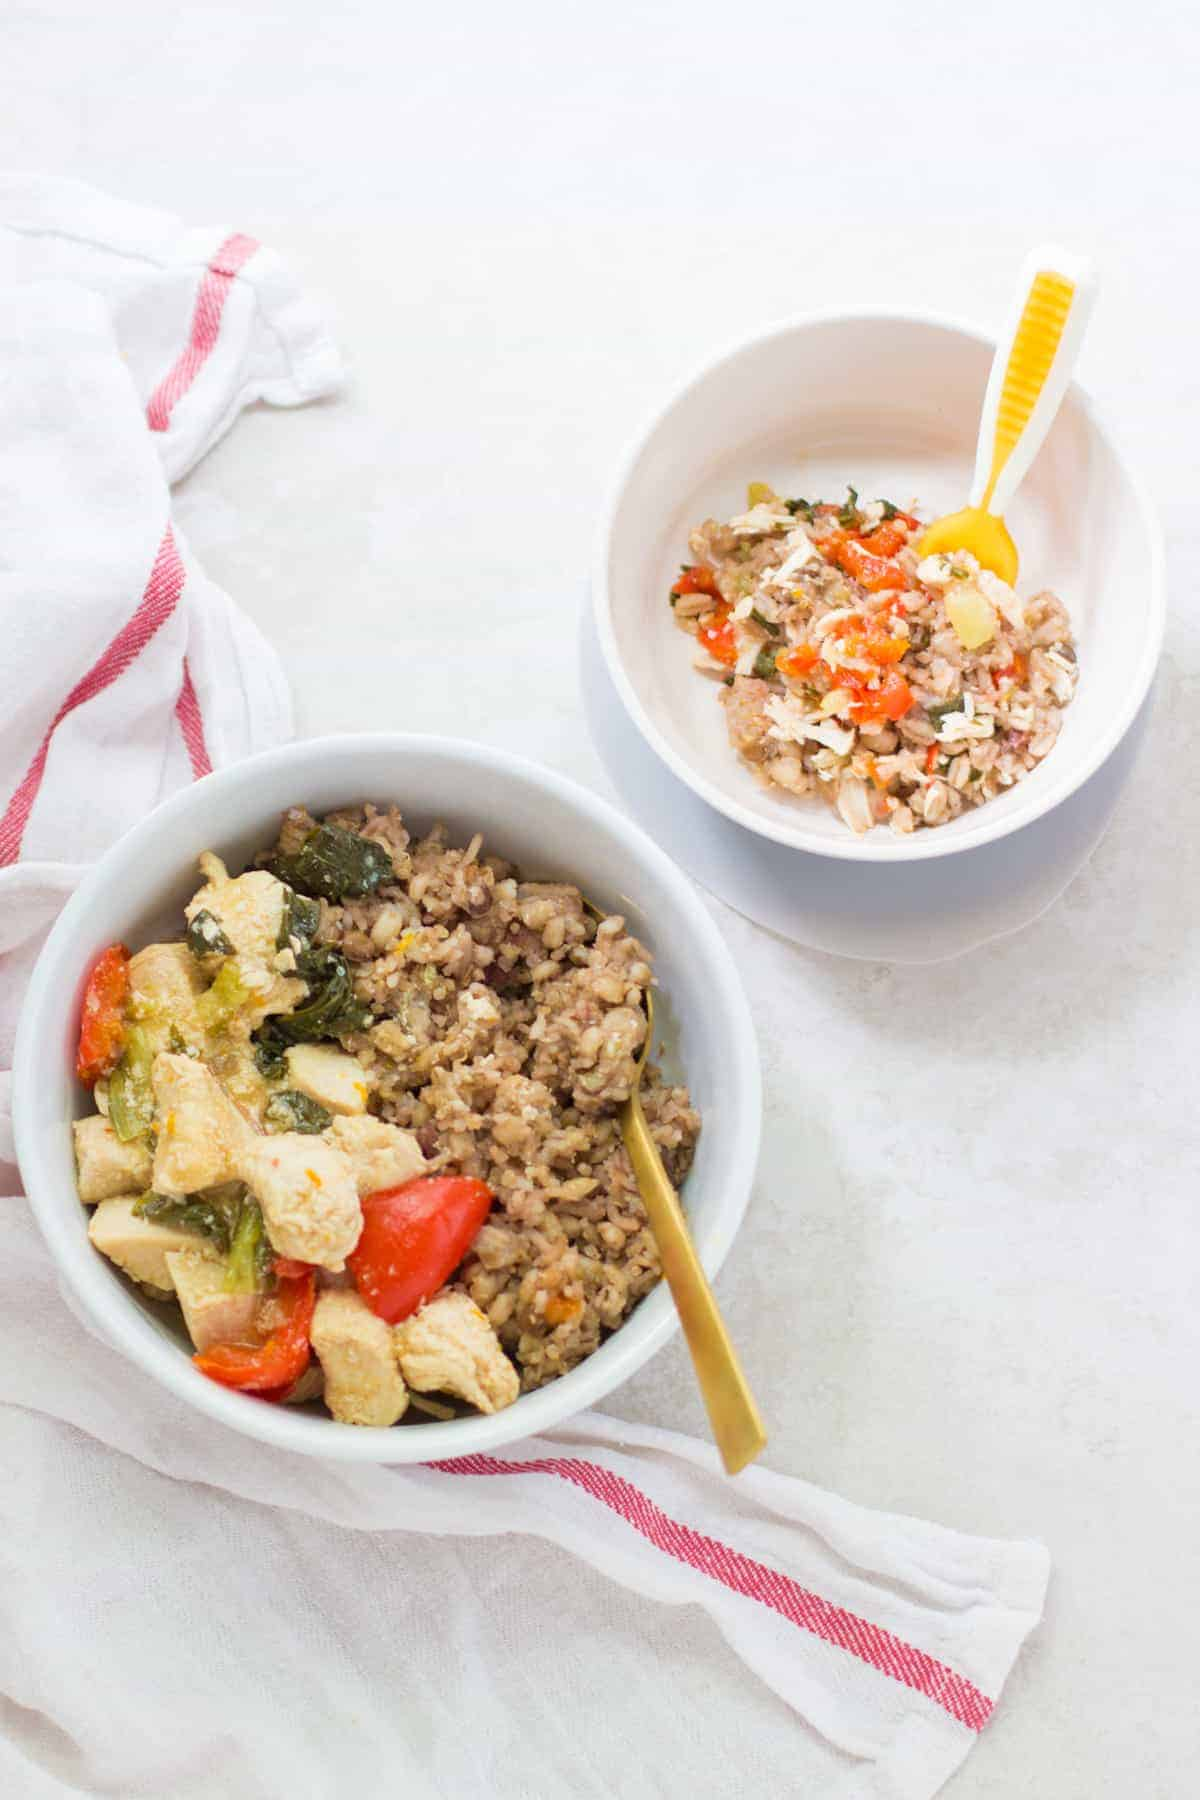 orange sesame chicken served with rice for adult and a baby's bowl with everything chopped and combined with rice